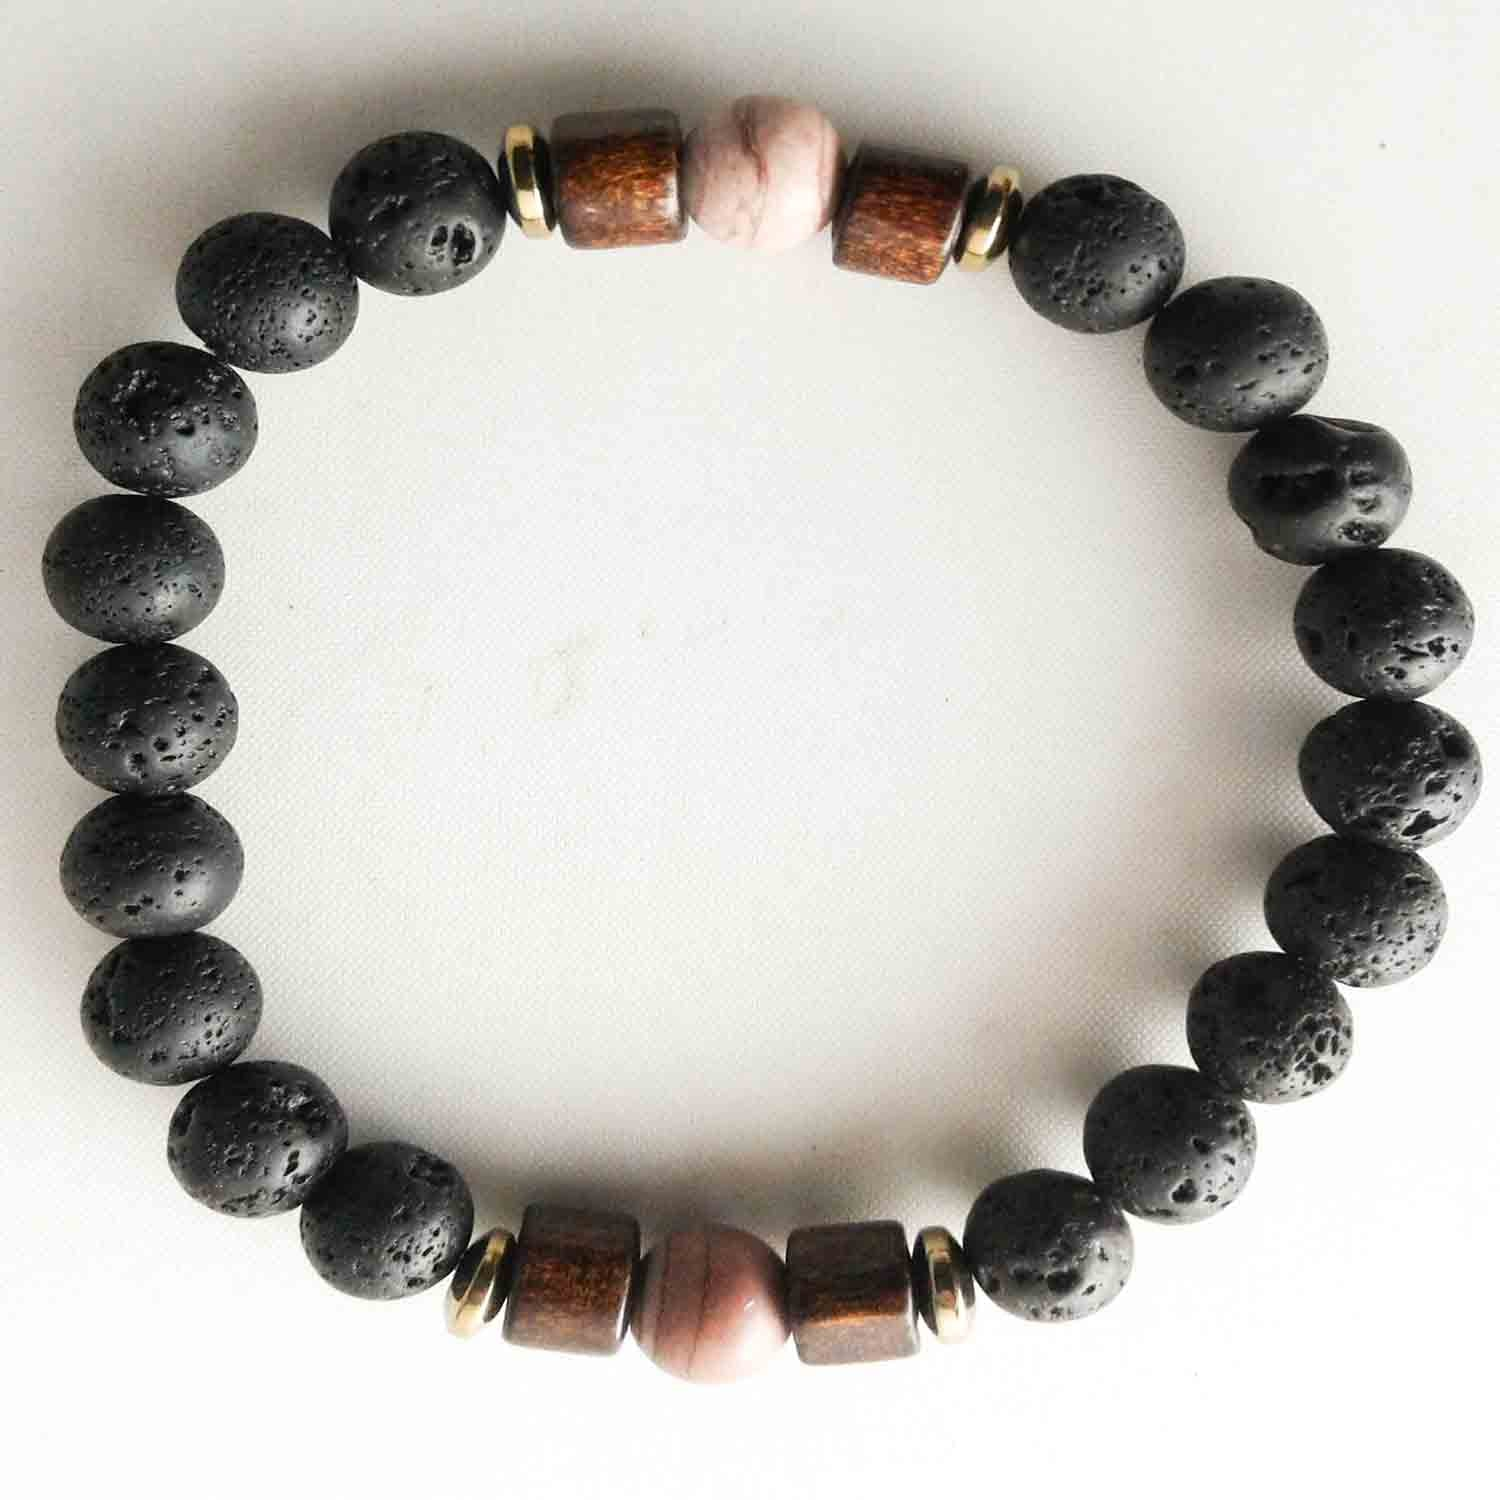 agate and lava stone bracelet set for couples